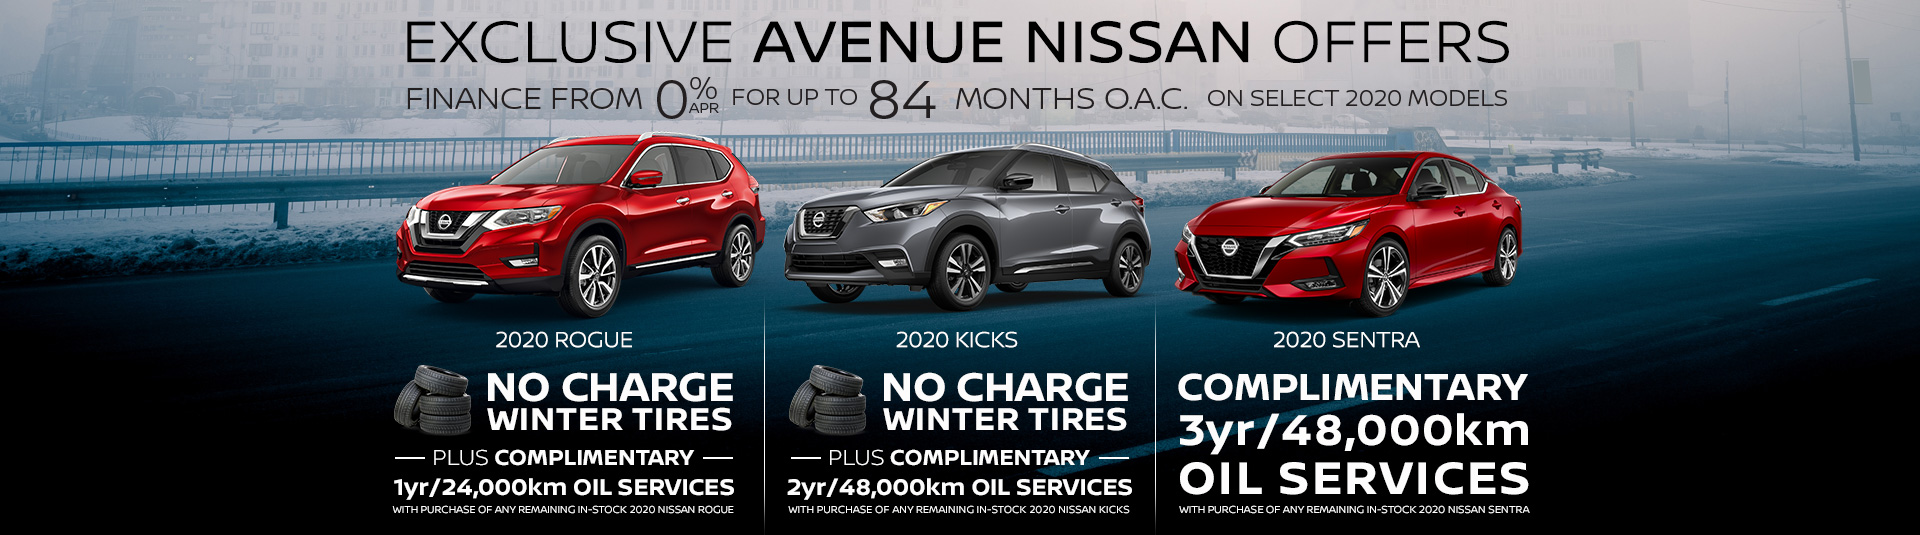 Avenue Nissan Offers